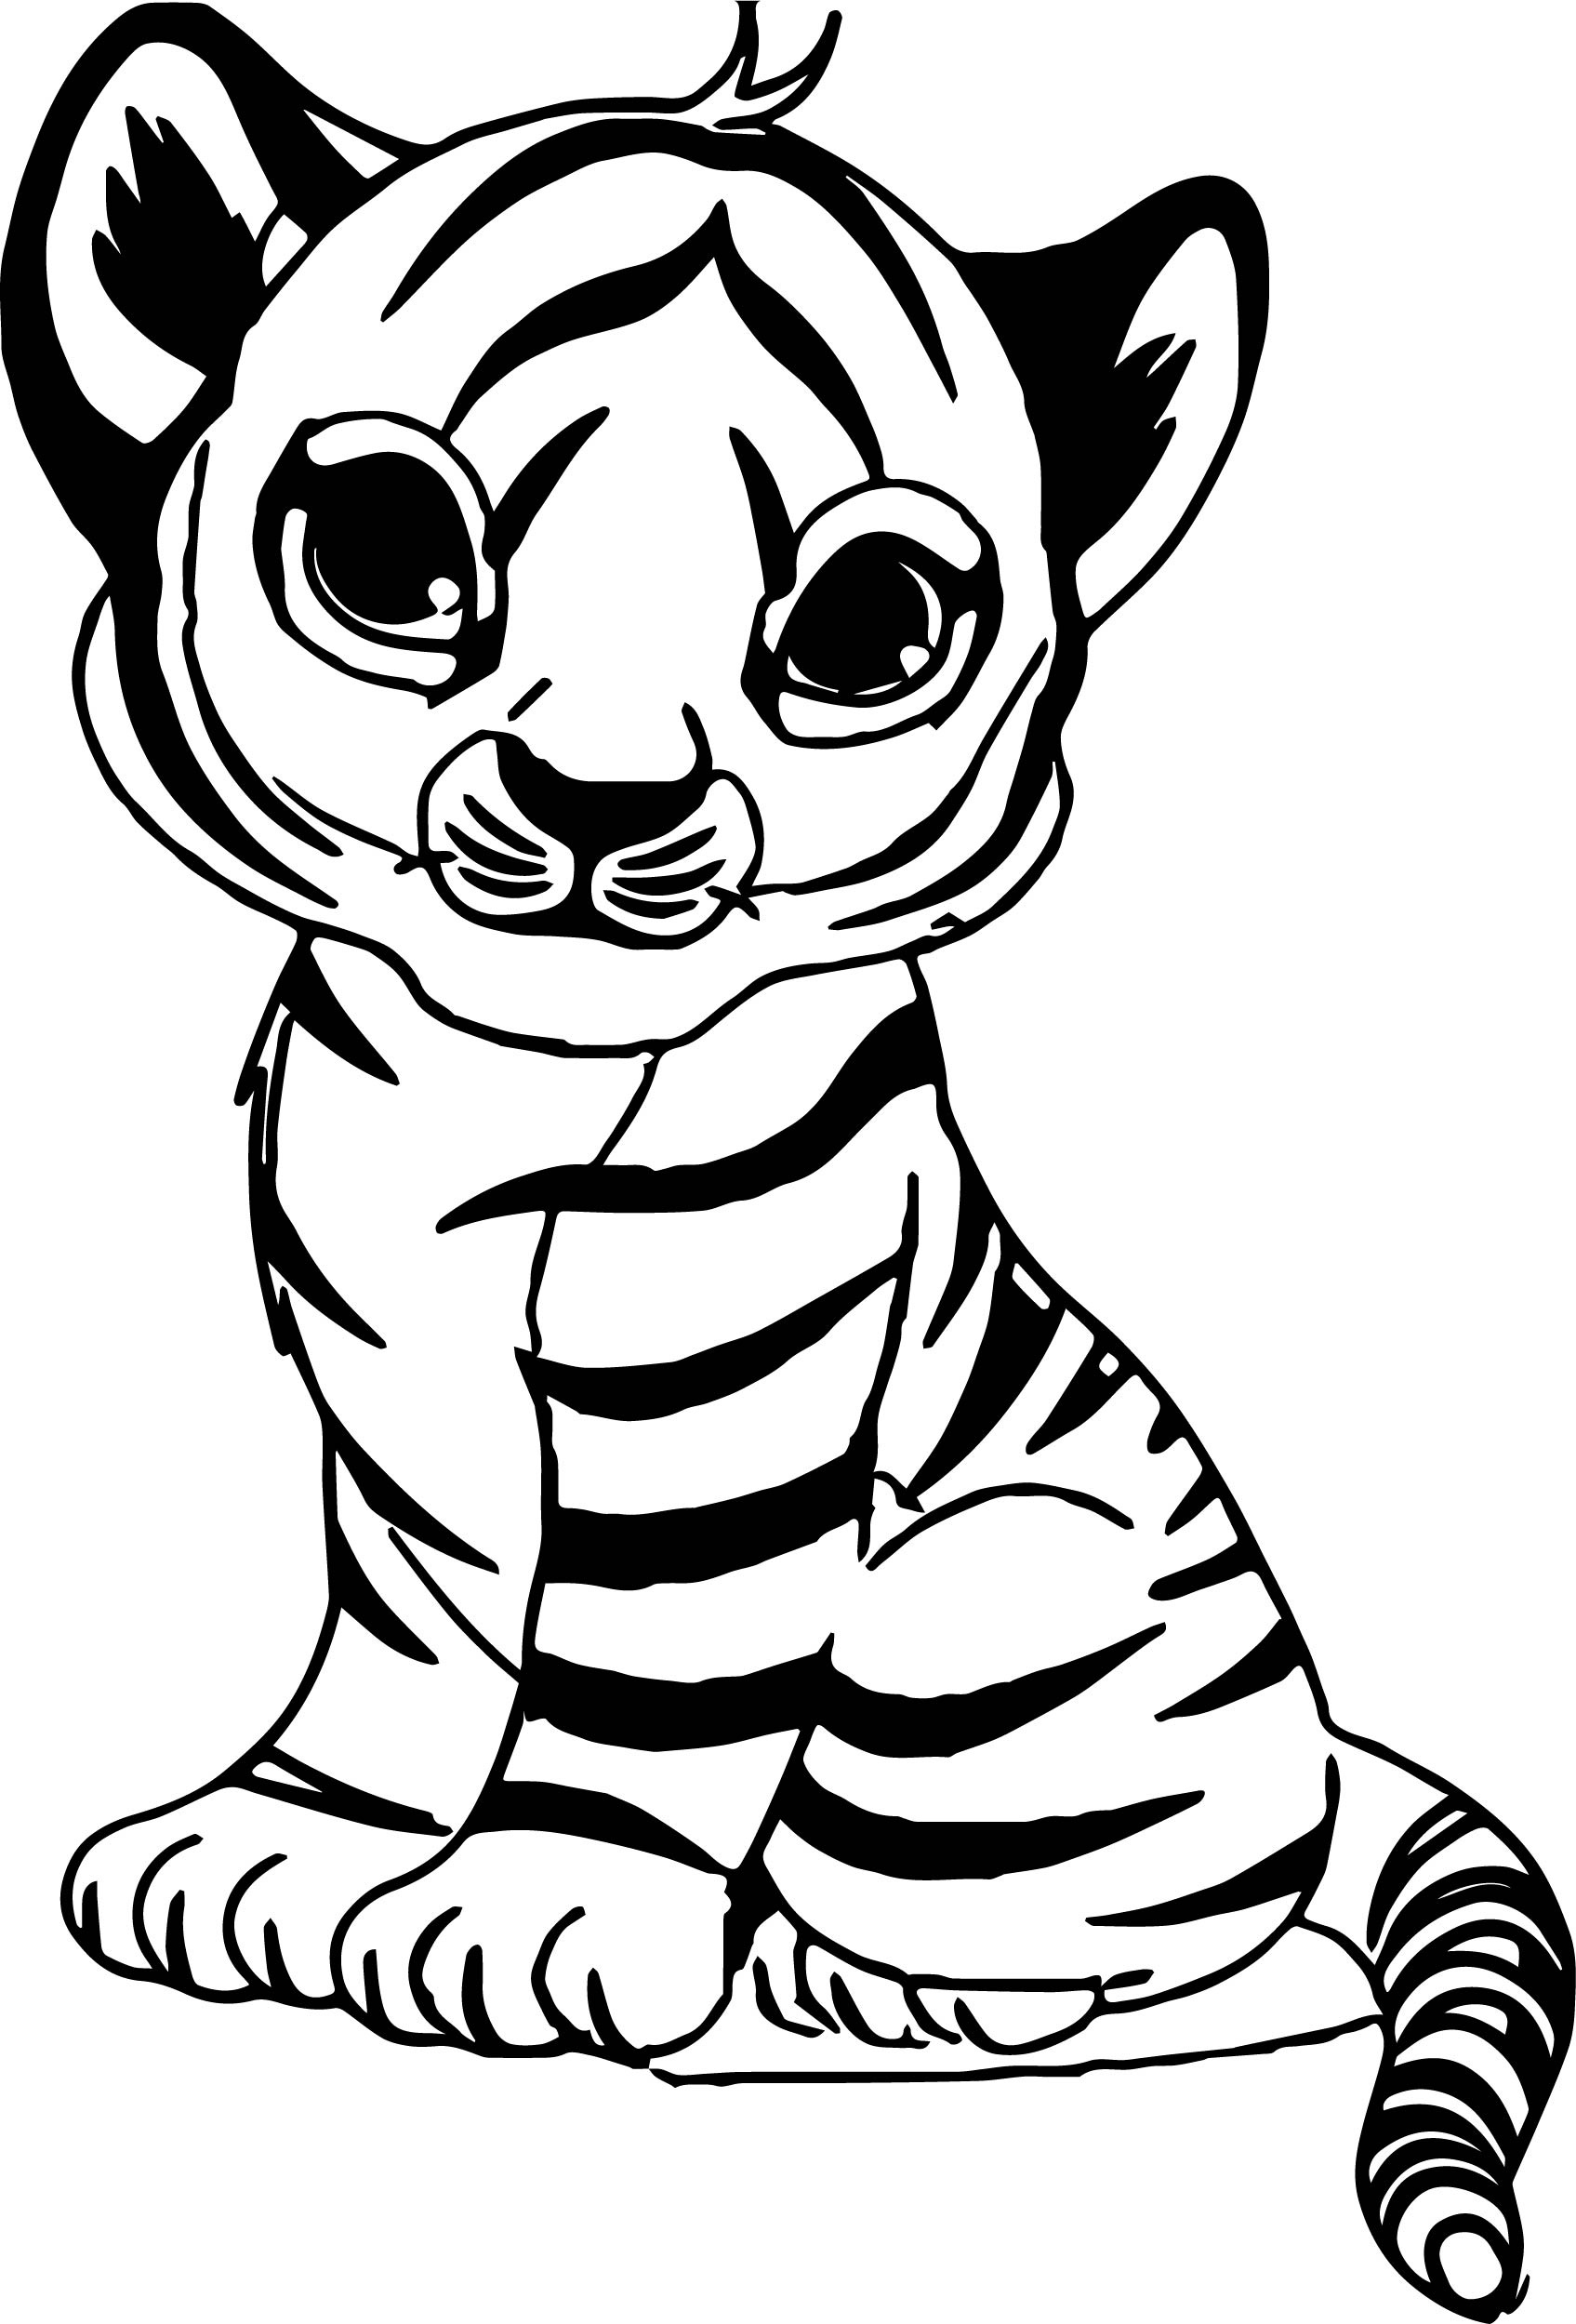 coloring tiger free printable tiger coloring pages for kids tiger coloring